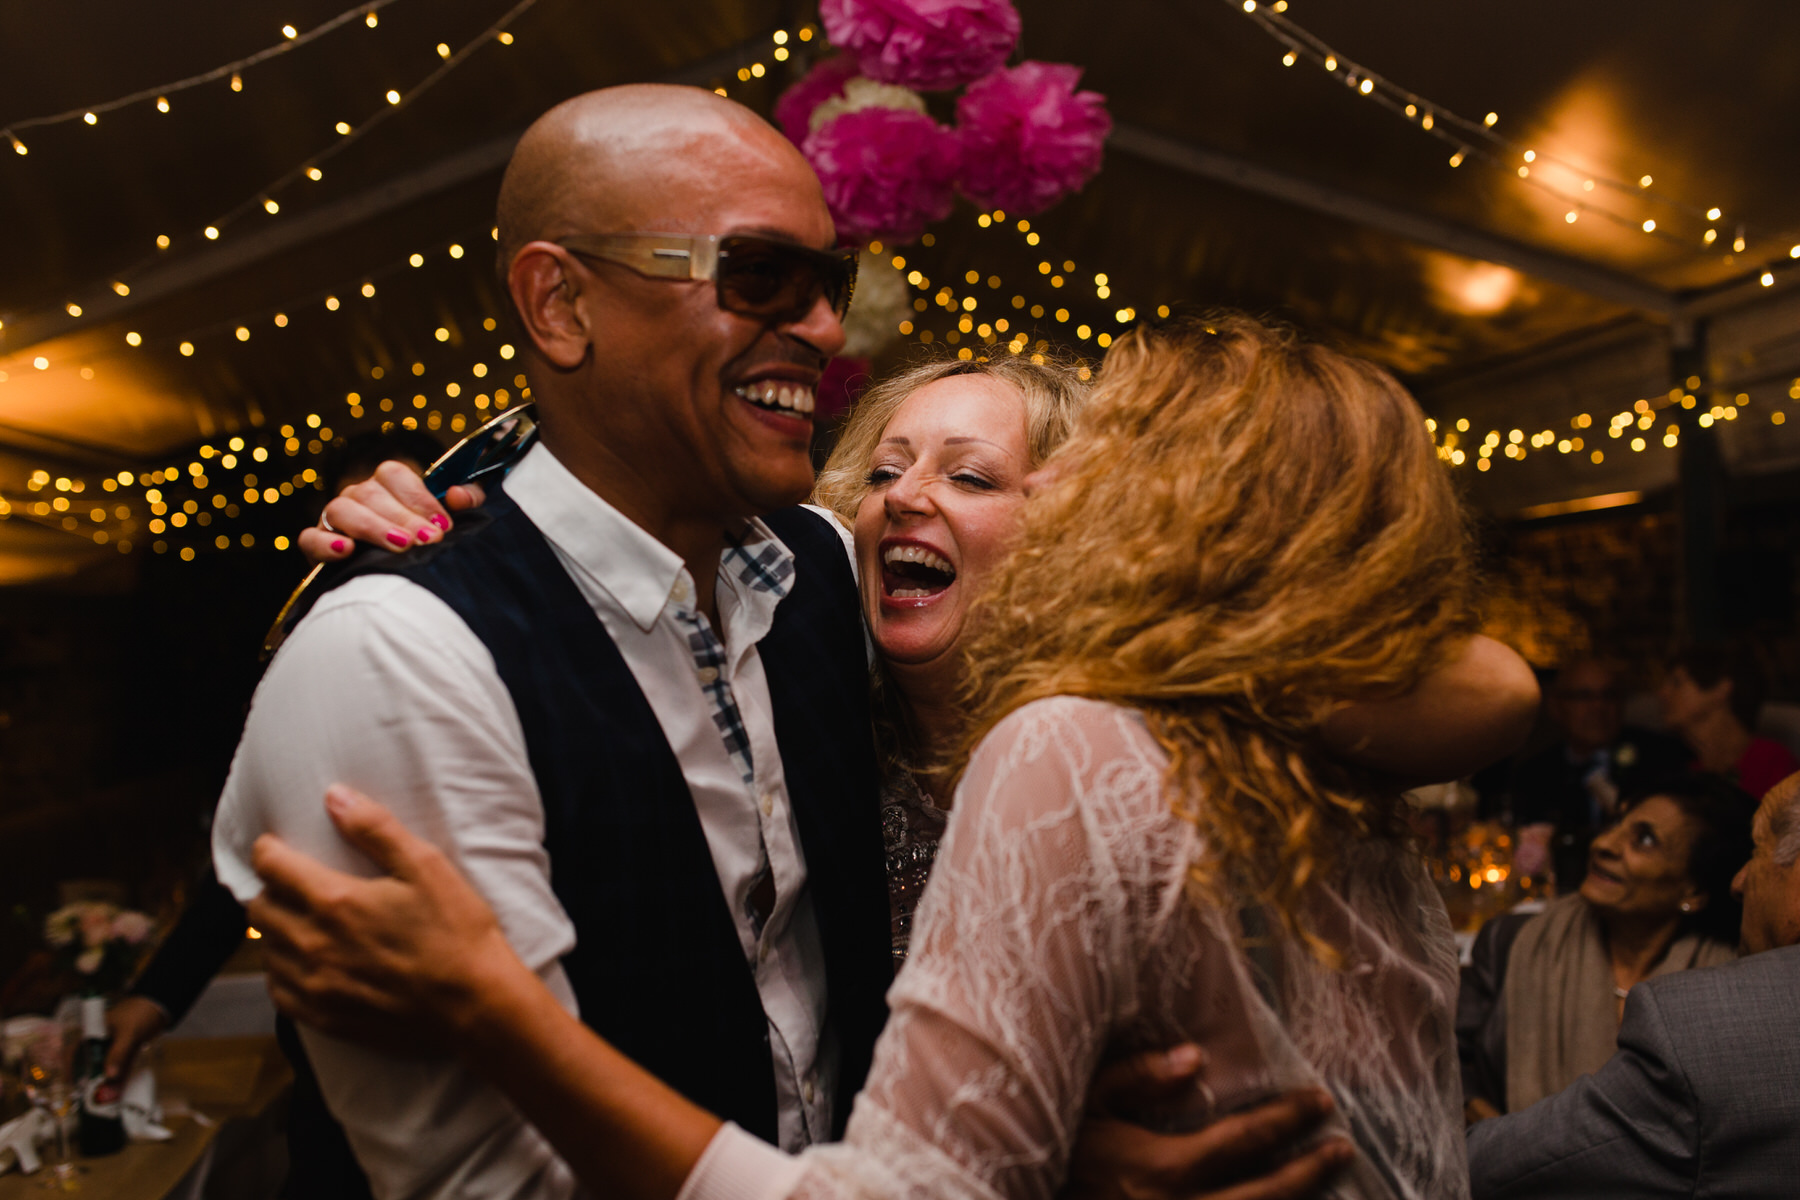 Metro Clapham Garden wedding dancing shots.jpg